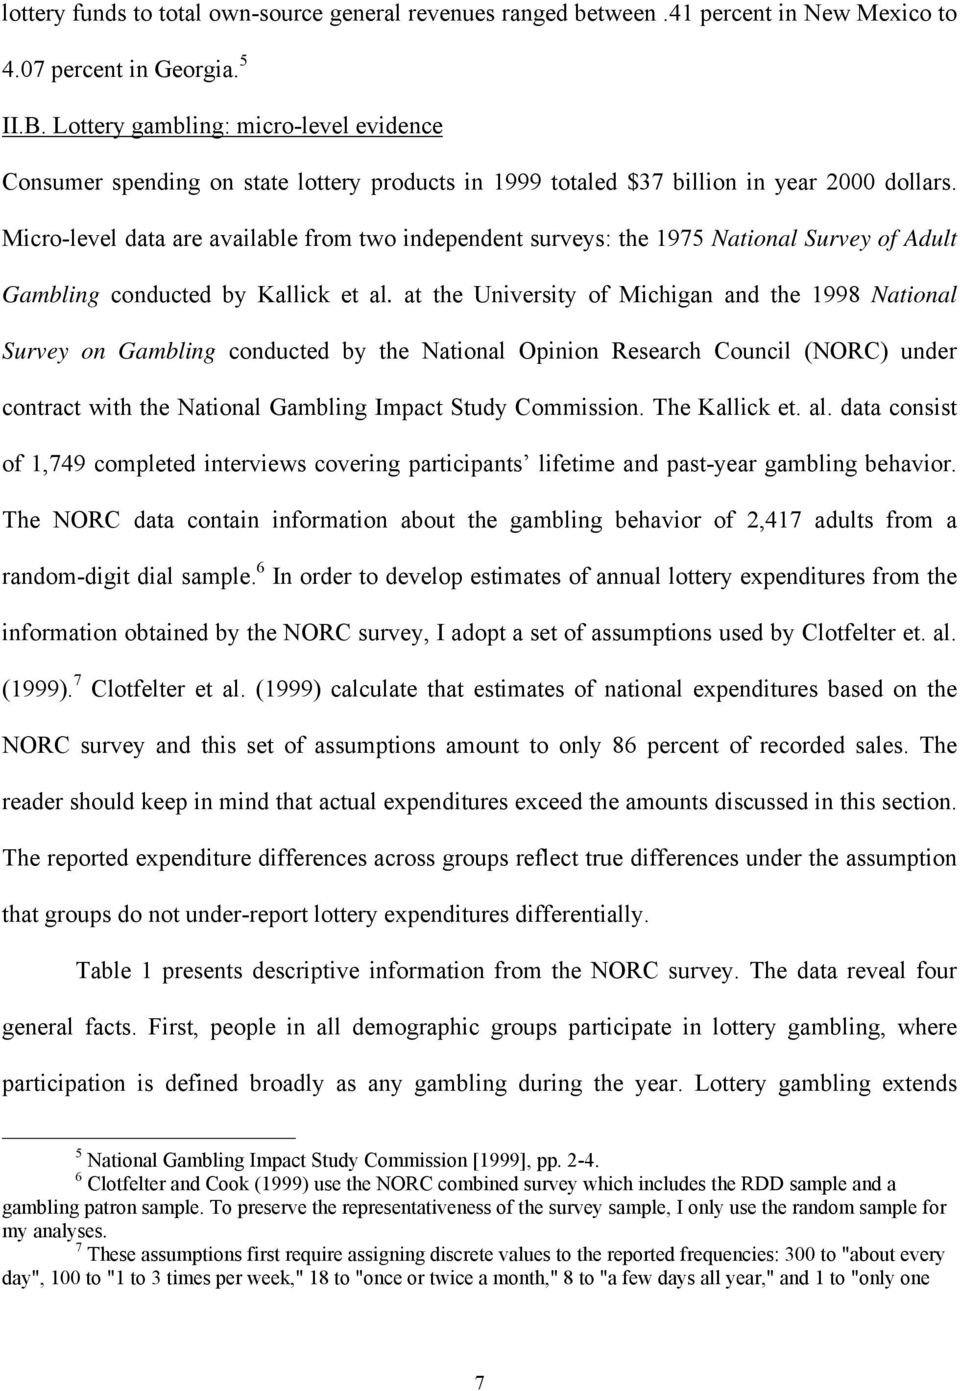 Micro-level data are available from two independent surveys: the 1975 National Survey of Adult Gambling conducted by Kallick et al.